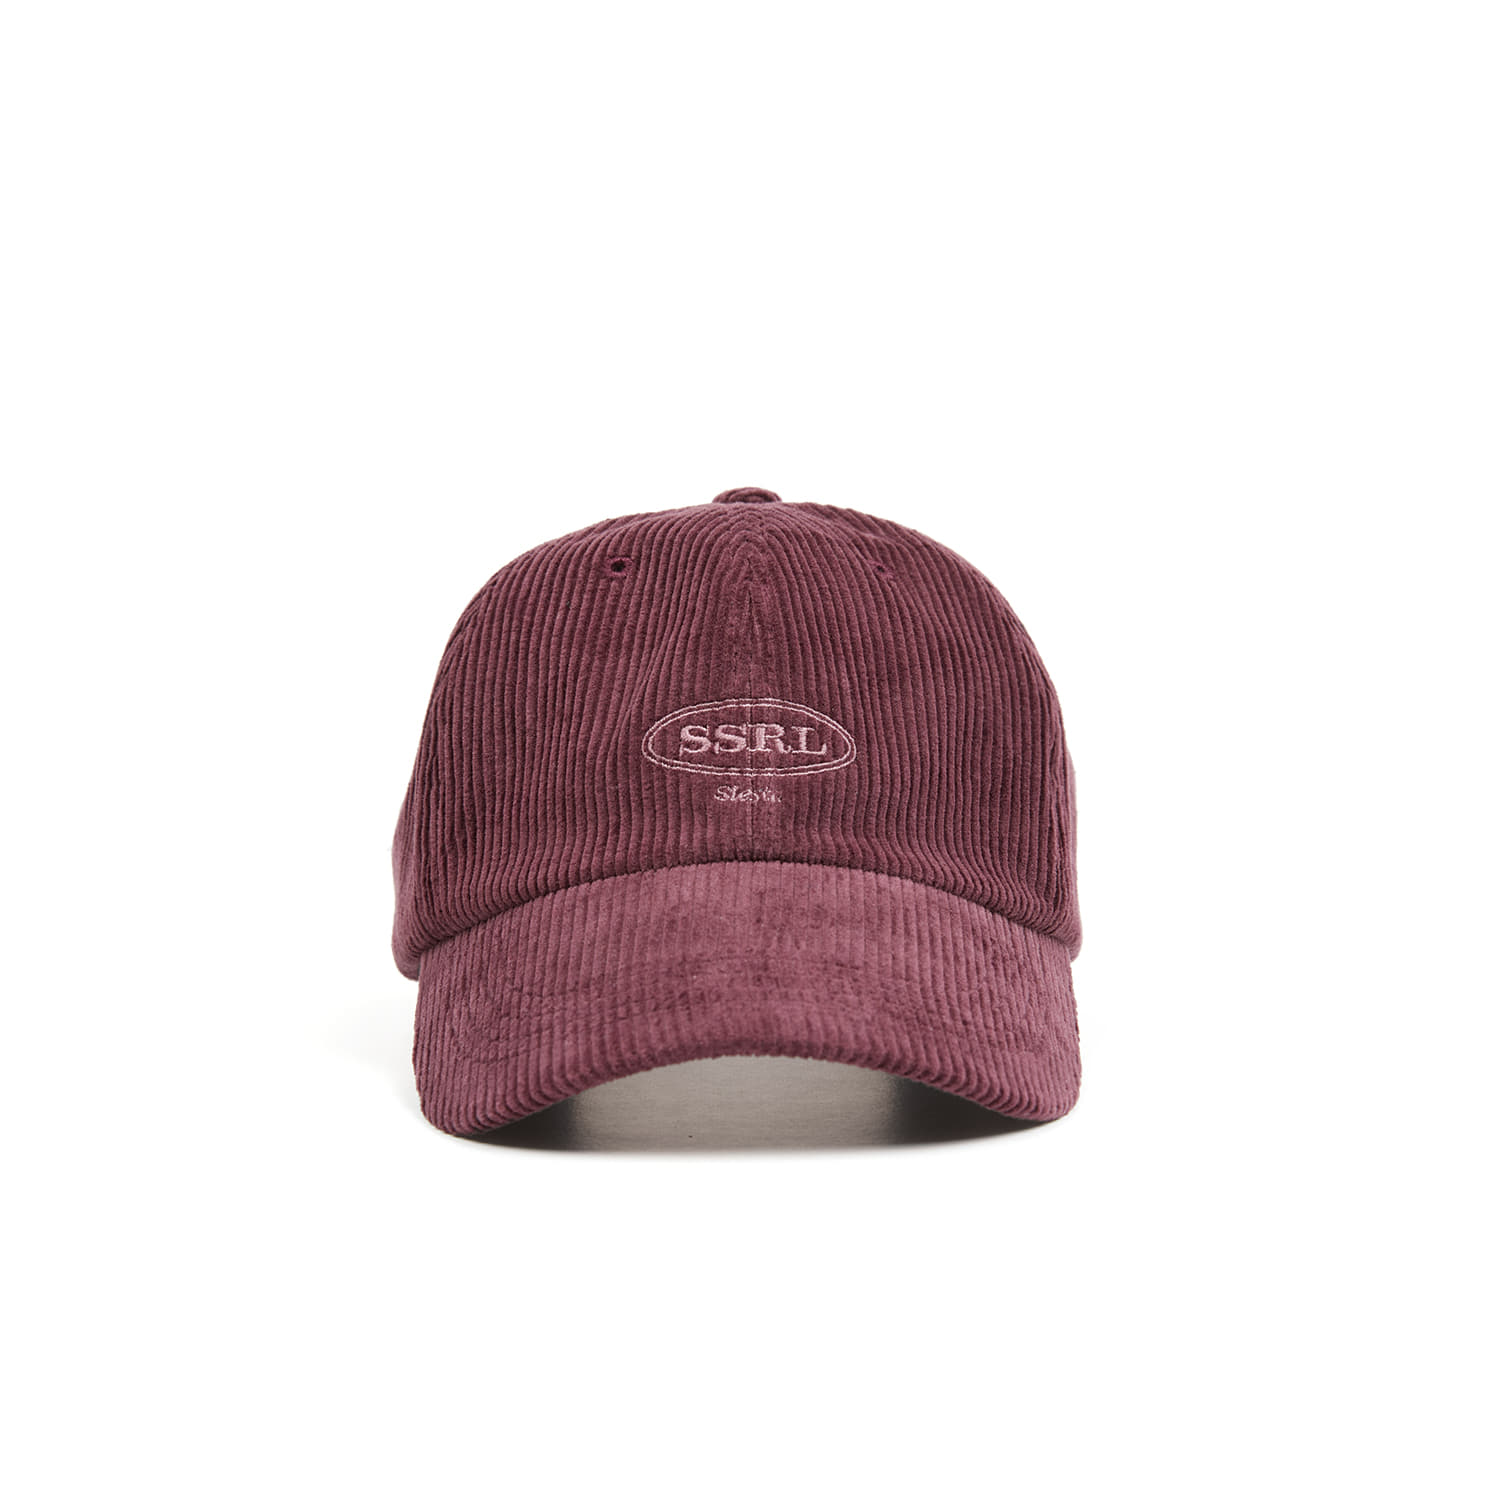 corduroy ball cap / wine